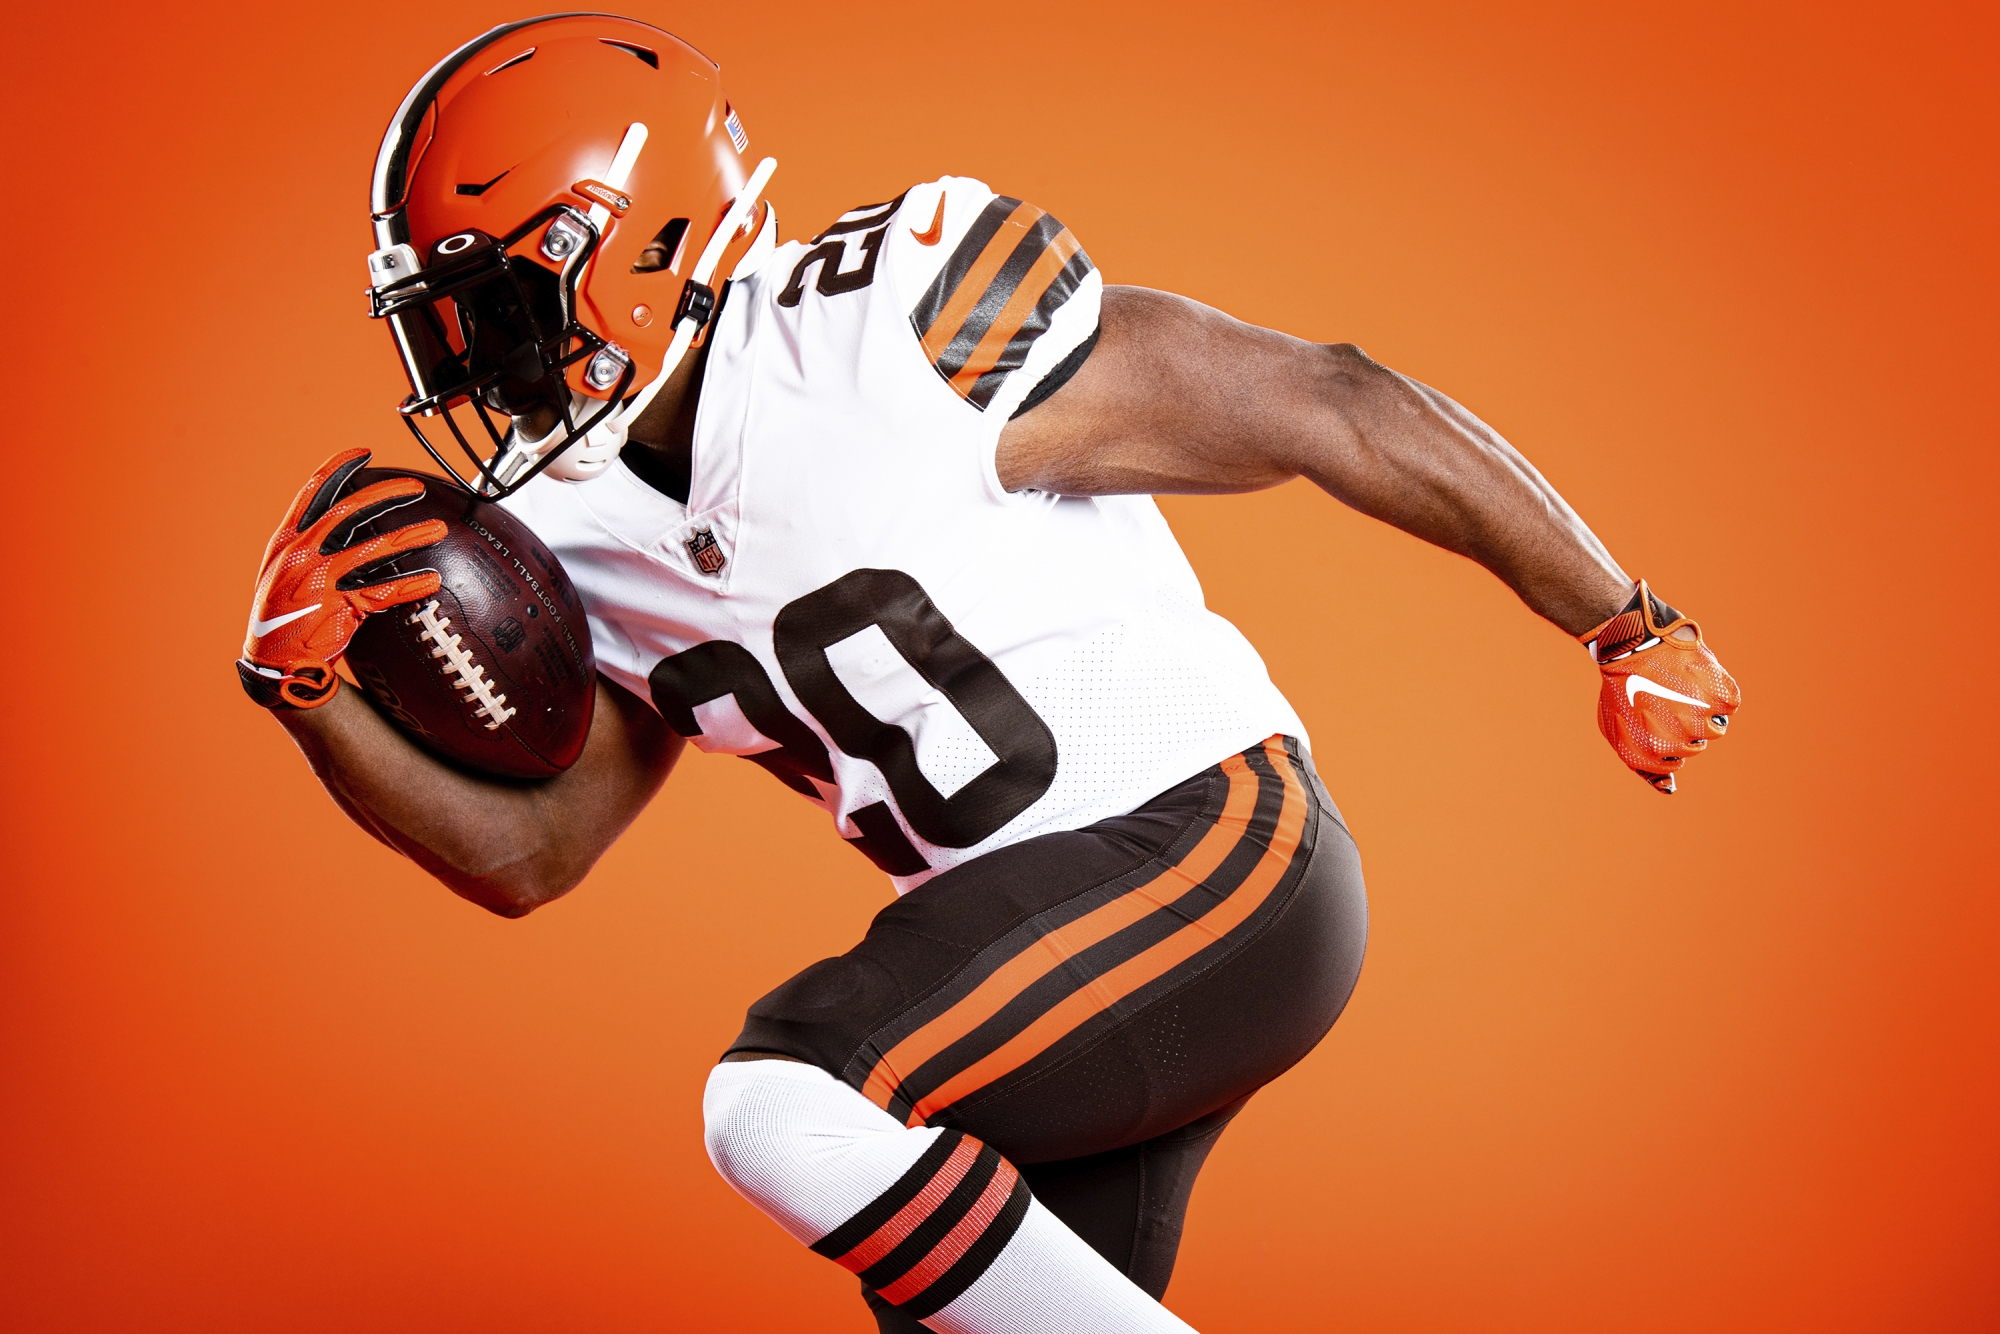 What might Cleveland Browns uniforms look like in 2020